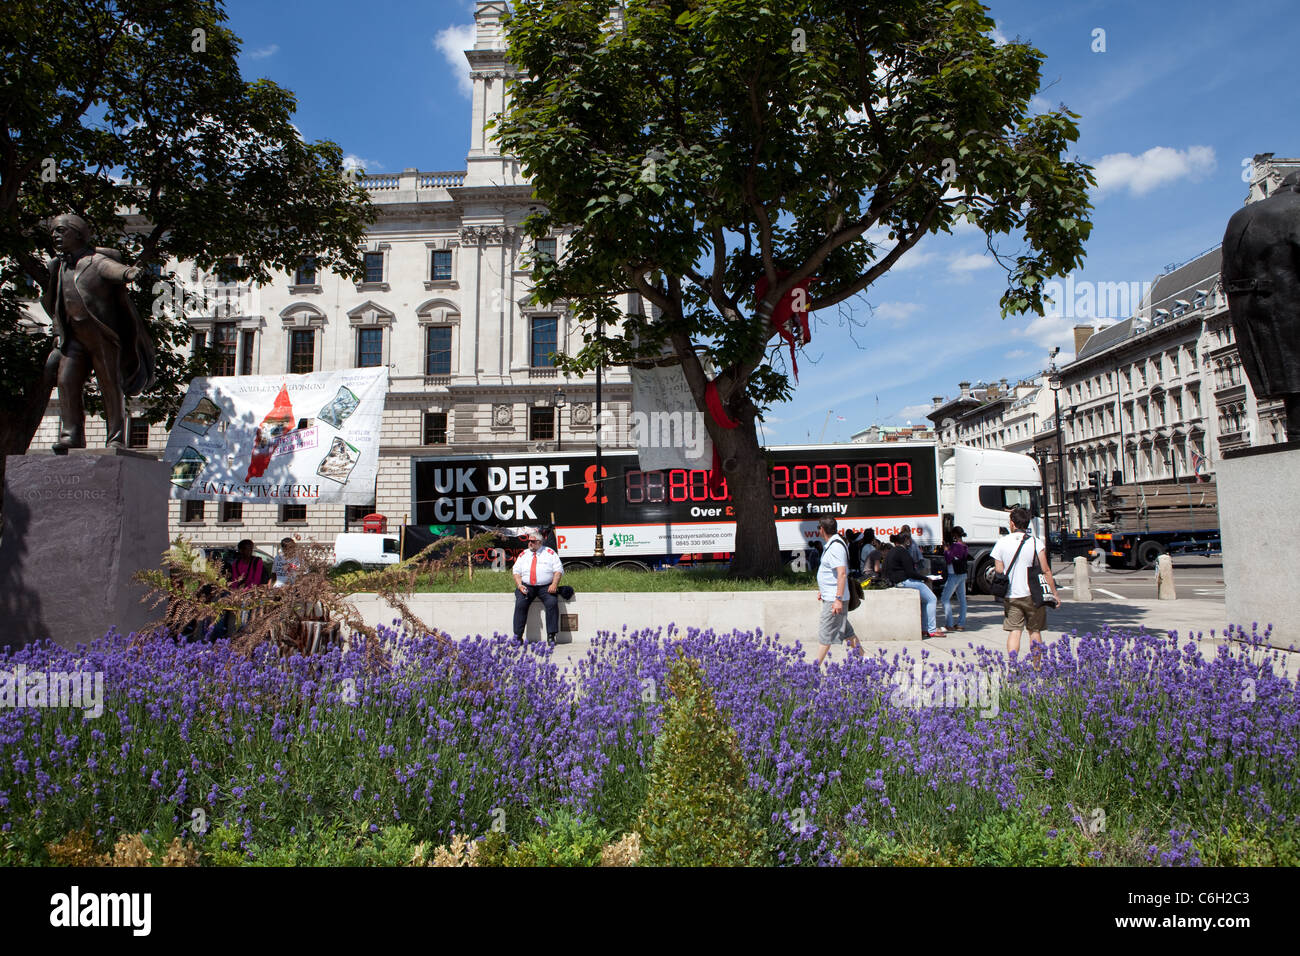 A van with 'UK Debt Clock' written on the side drives around Parliament Square as part of a protest during - Stock Image